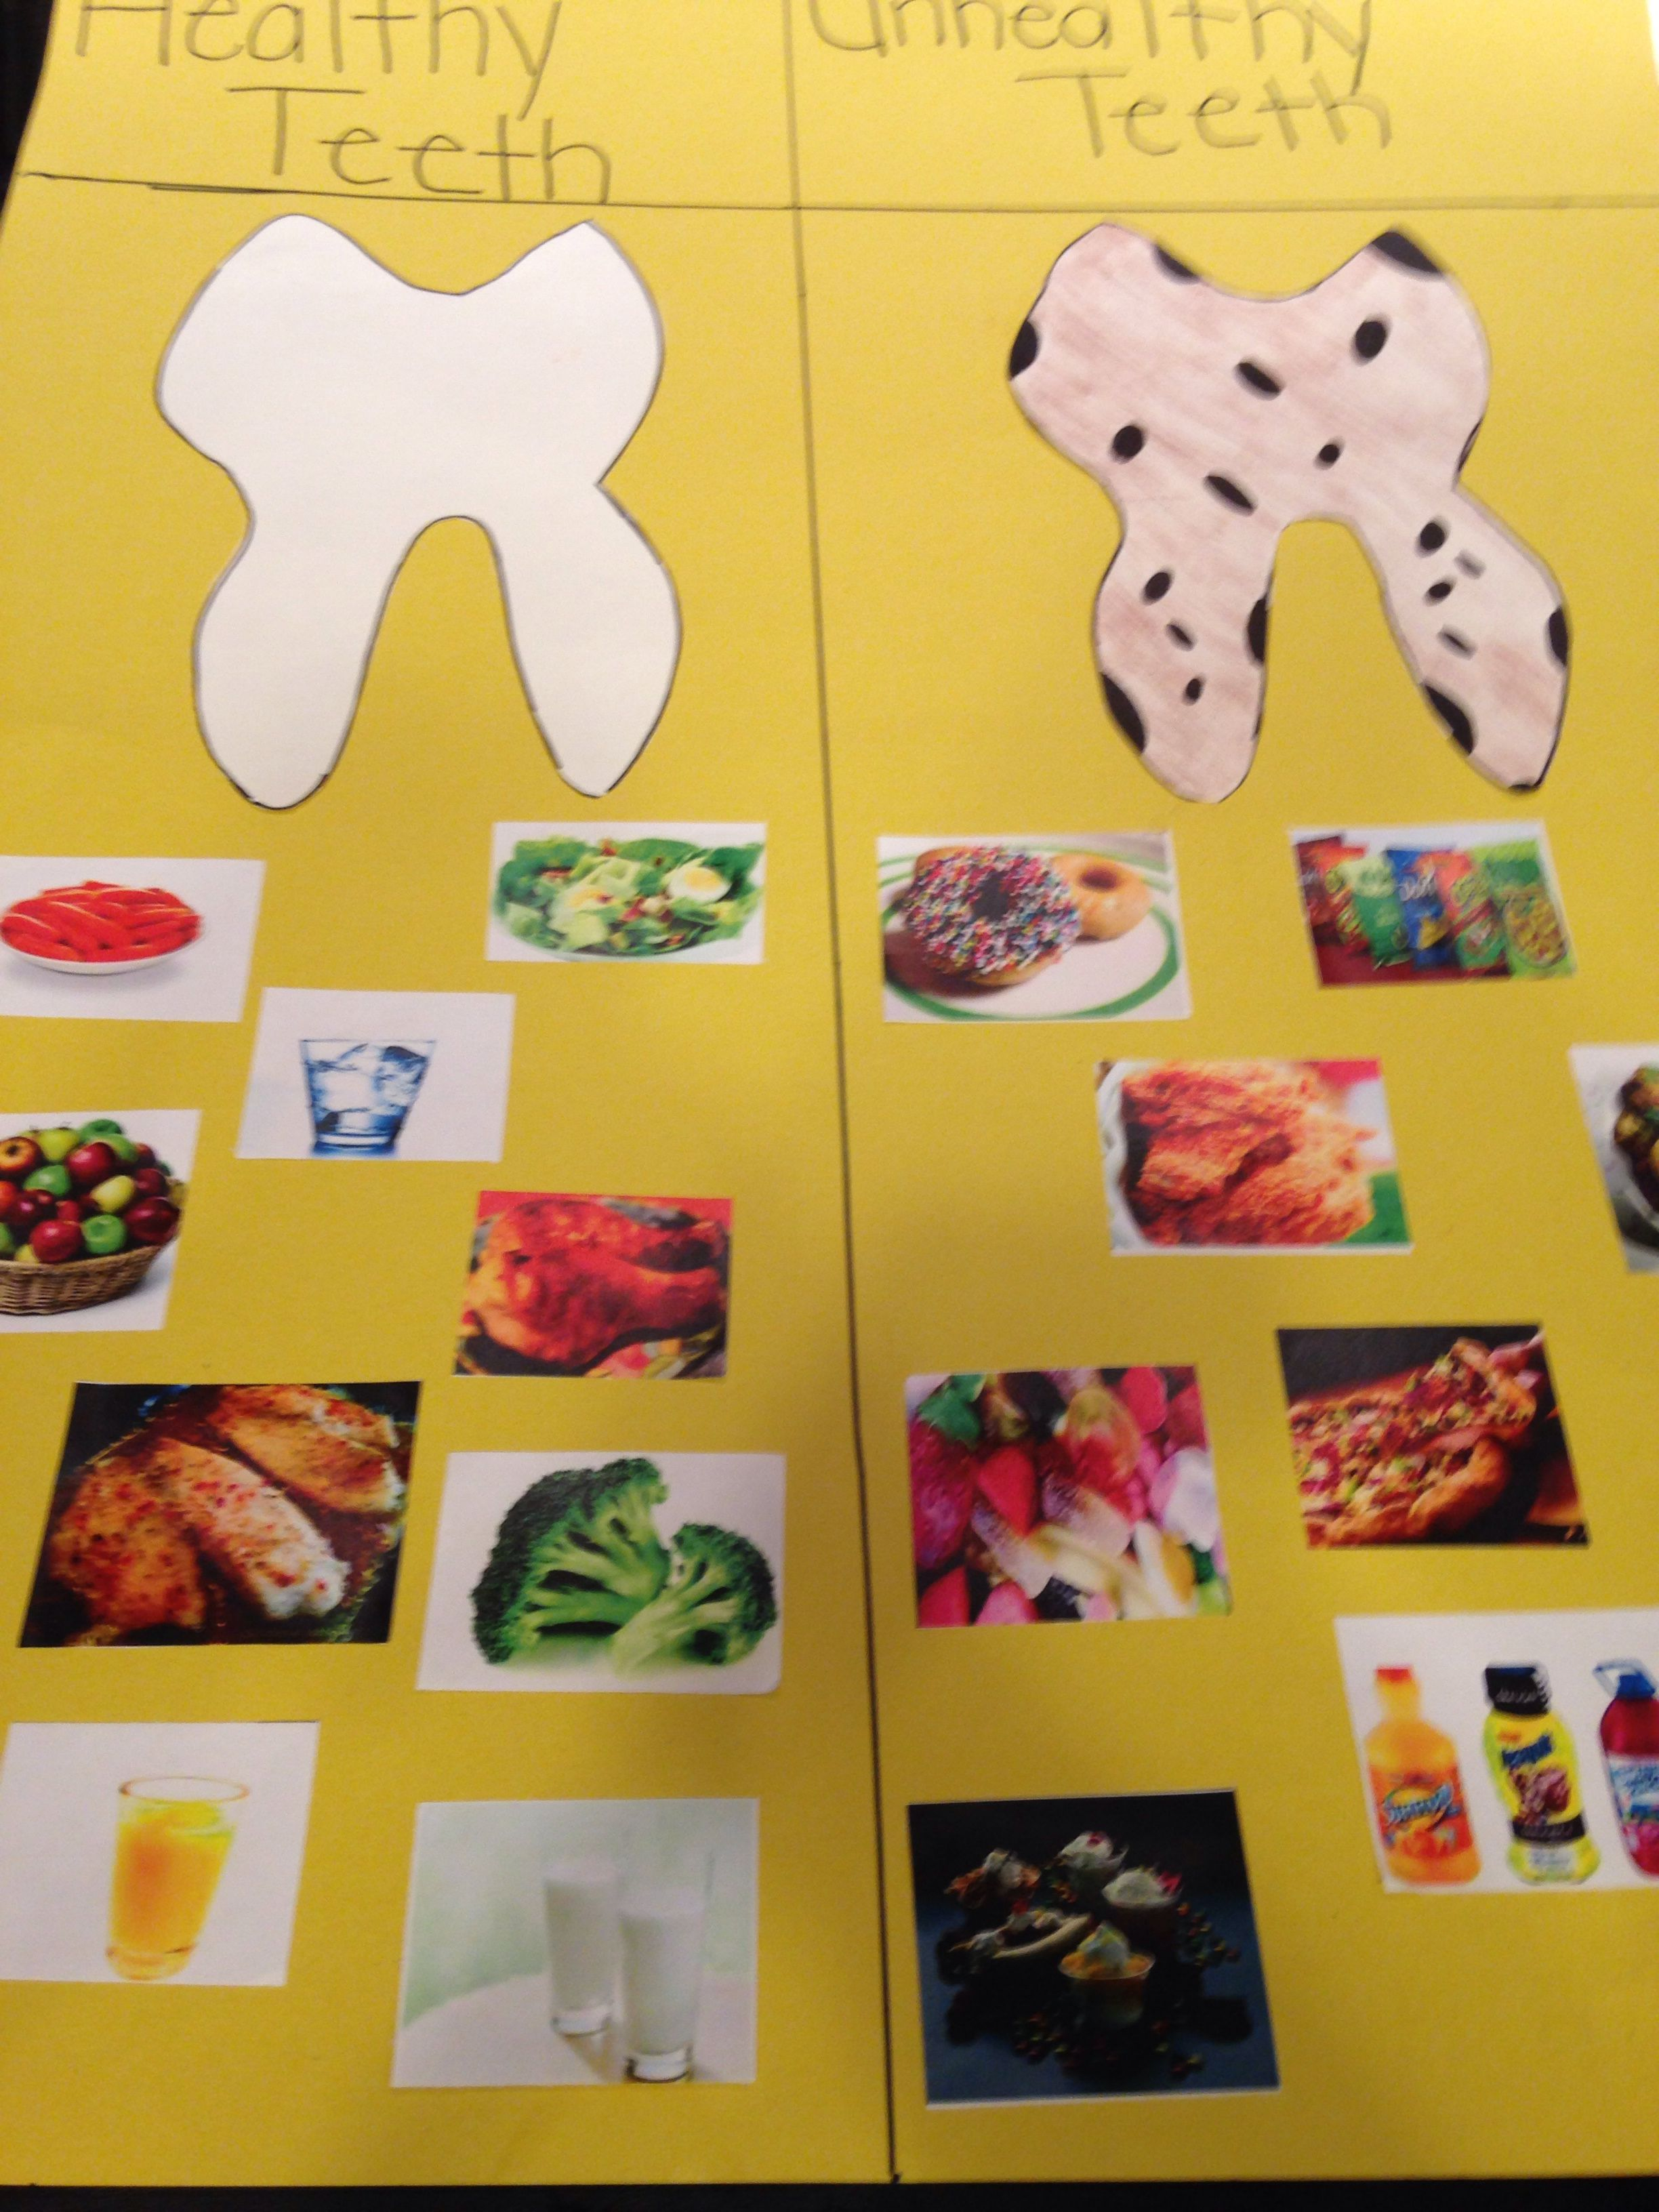 Healthy Teeth Versus Unhealthy Teeth I Made This Poster